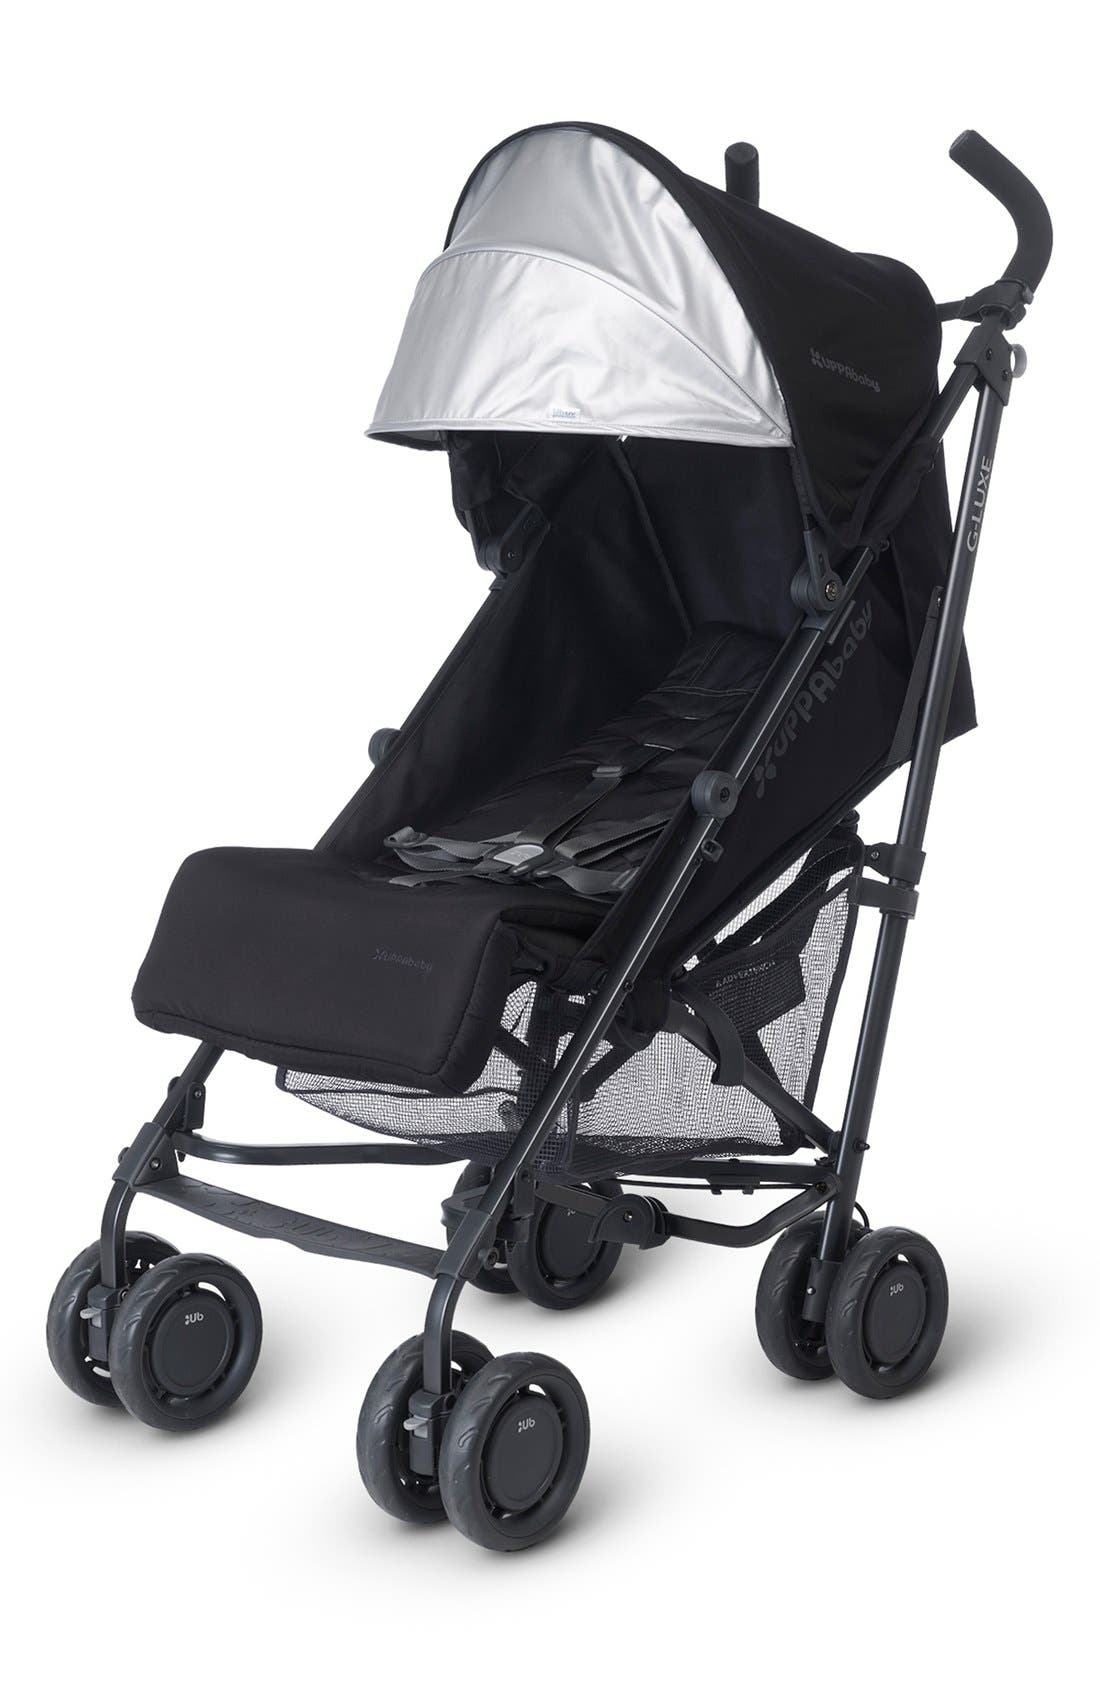 2015 G-LUXE - Aluminum Frame Reclining Umbrella Stroller,                             Alternate thumbnail 6, color,                             001